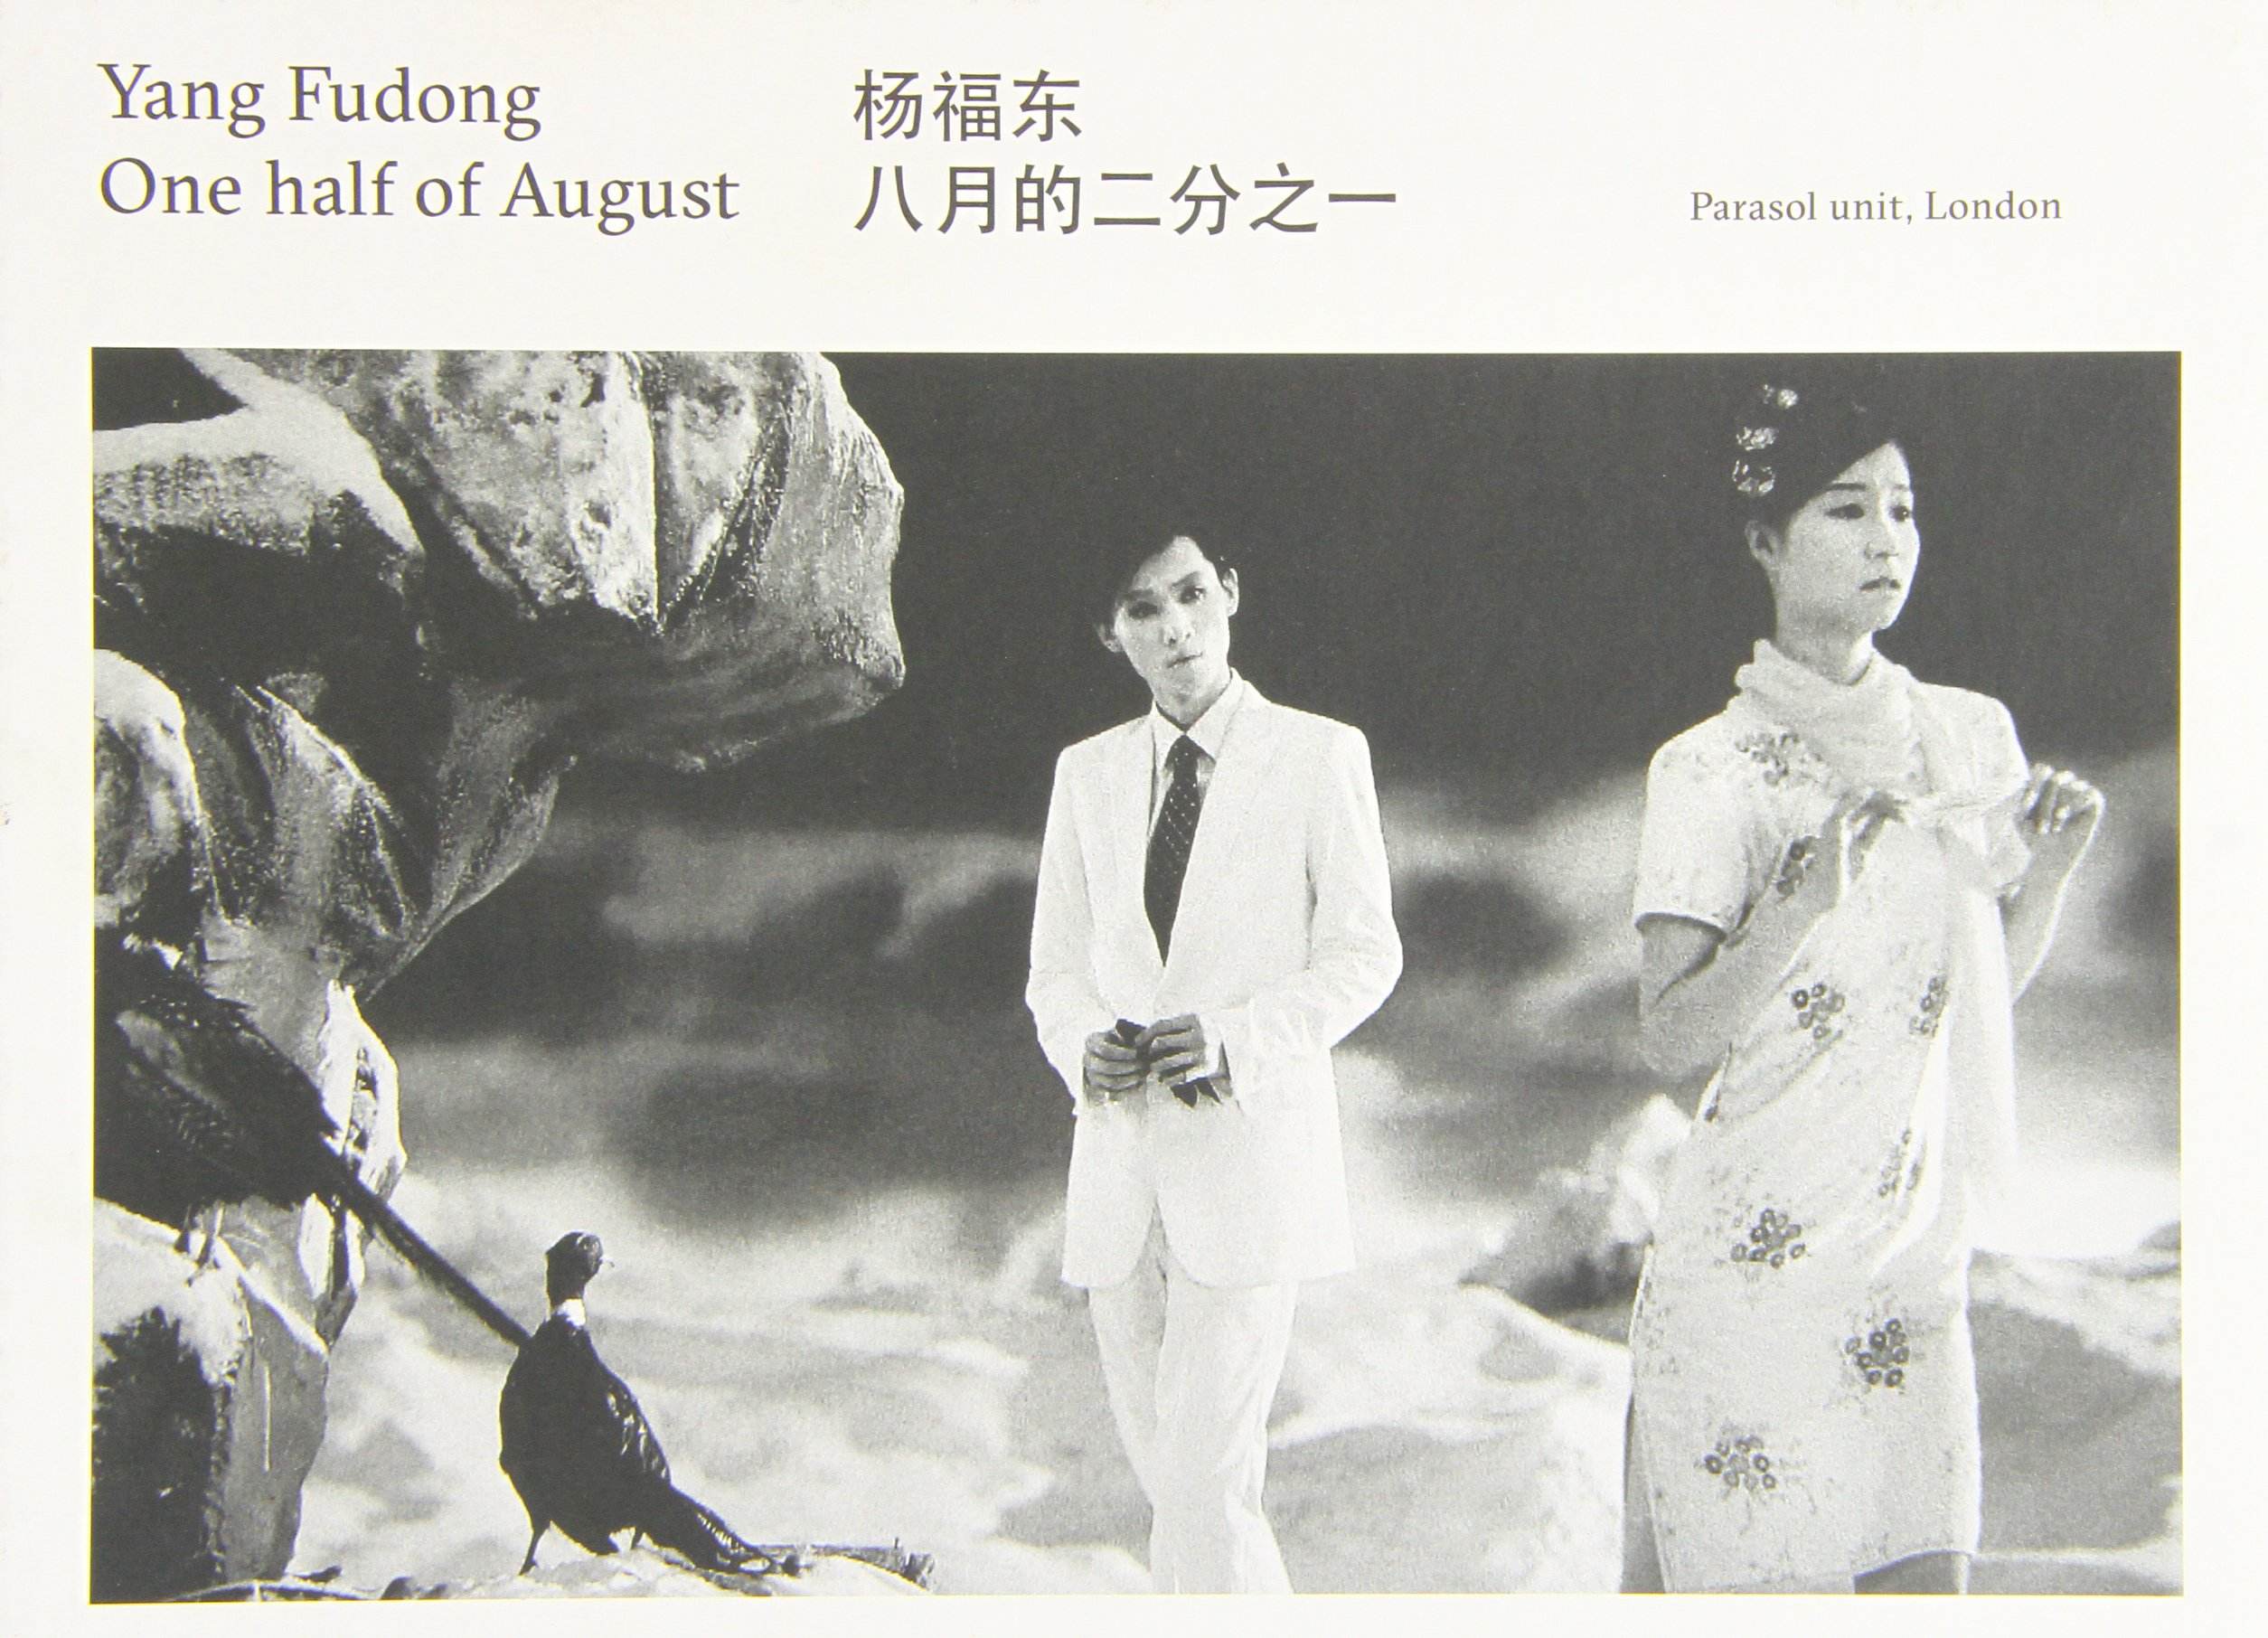 Yang Fudong - One Half of August. Edited by Ziba Ardalan